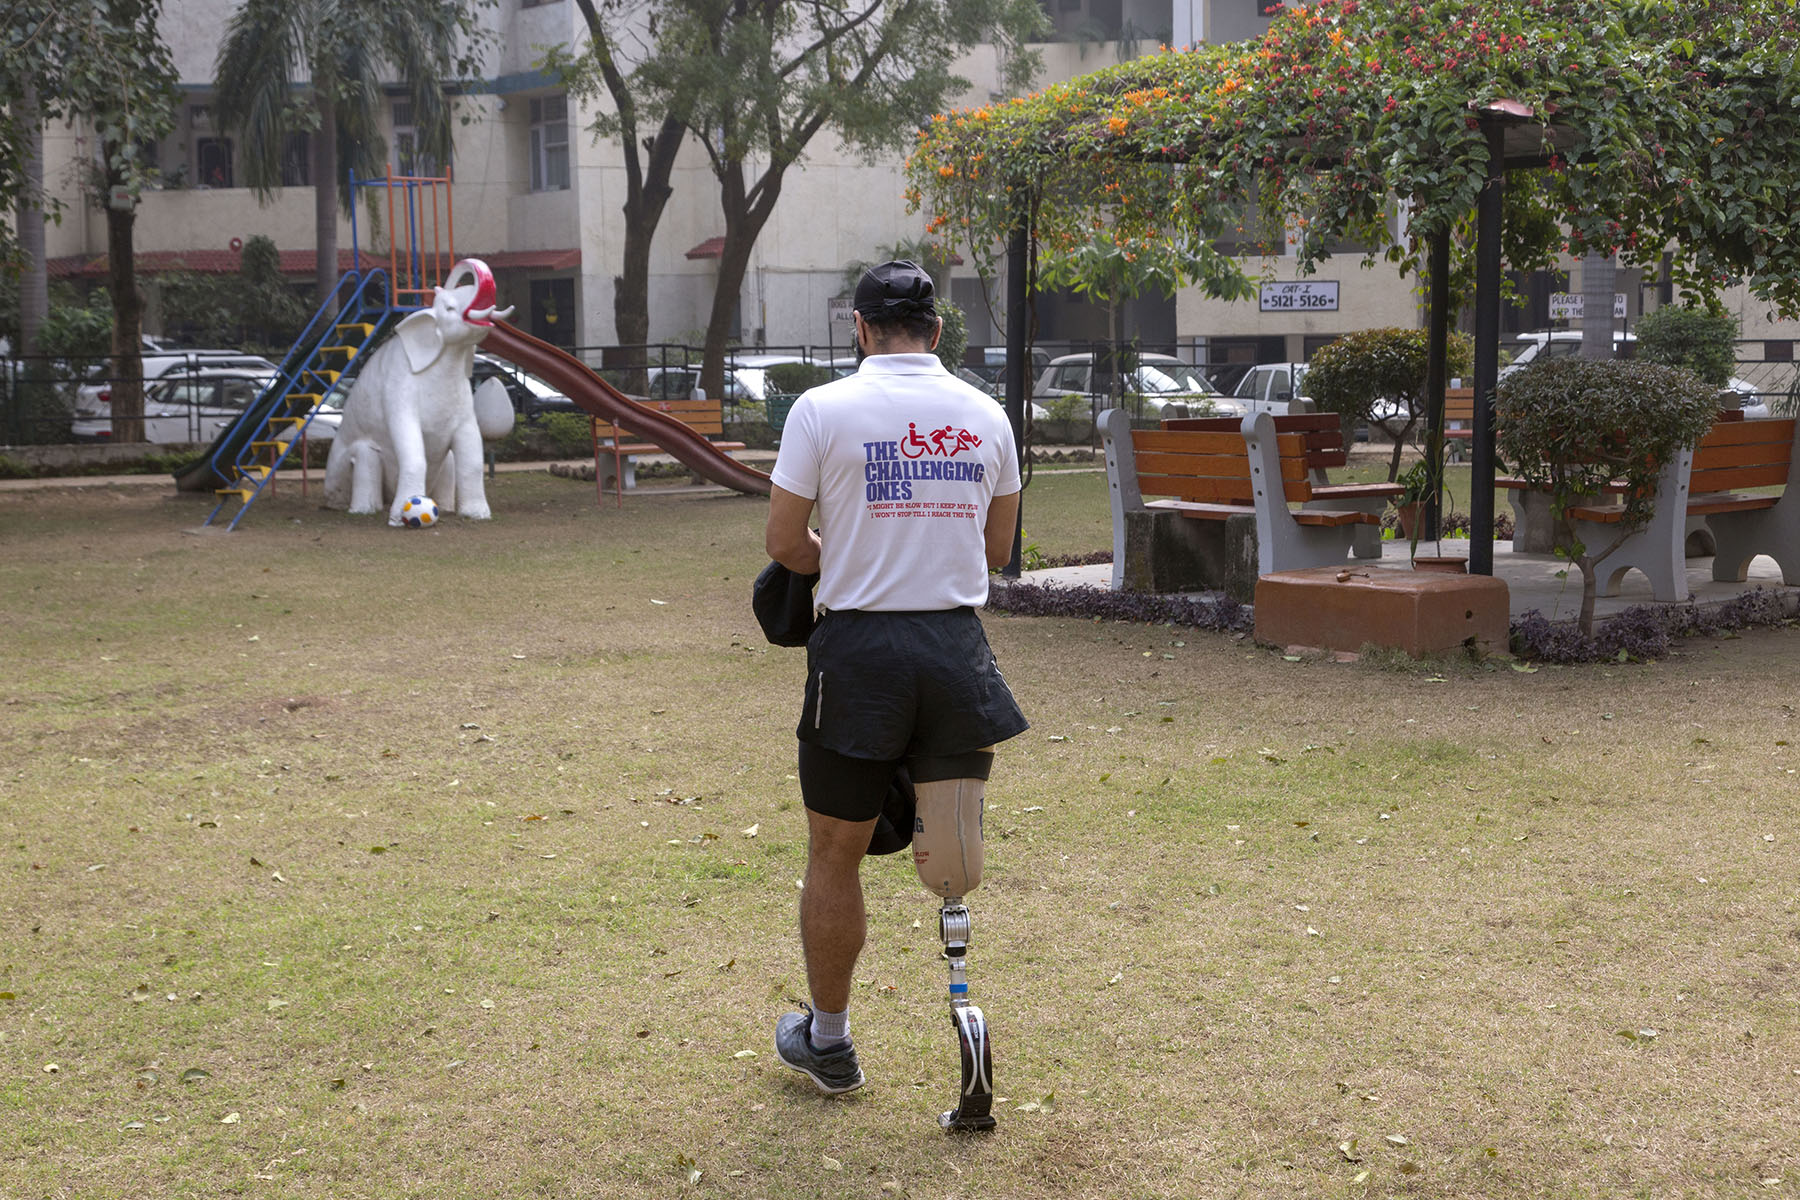 """DP wearing his blade, black shorts and white T-shirt that says """"The Challenging Ones"""" is walking away from us in a park. Ahead of him is a children's slide fronted by the statue of a white elephant with its trunk raised."""